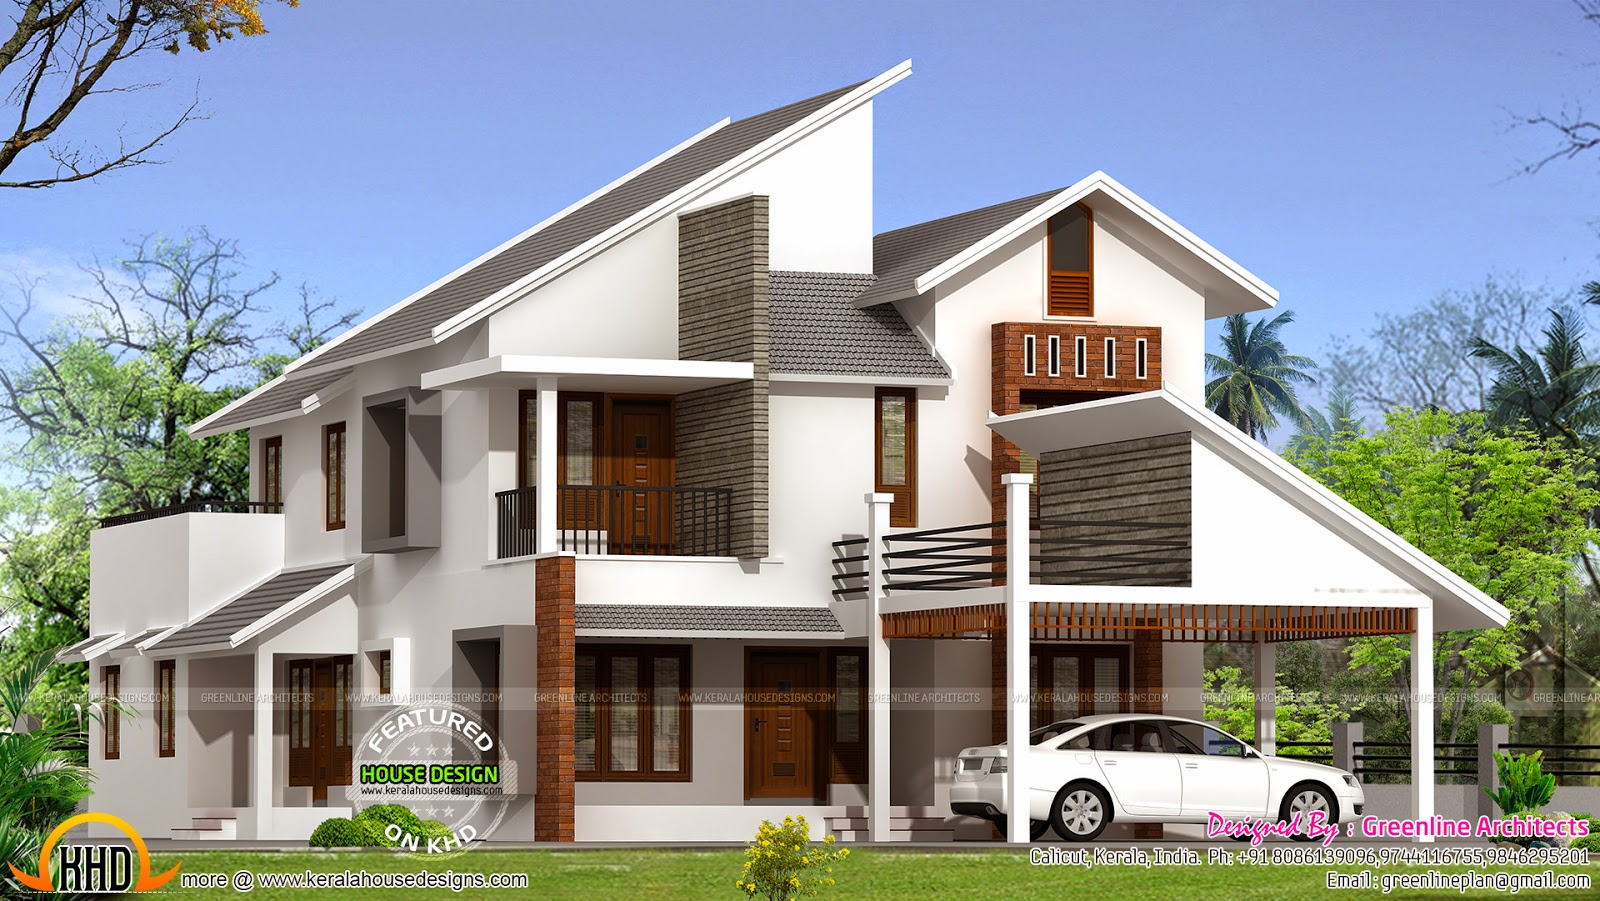 New modern house plan kerala home design and floor plans for New house plans with pictures